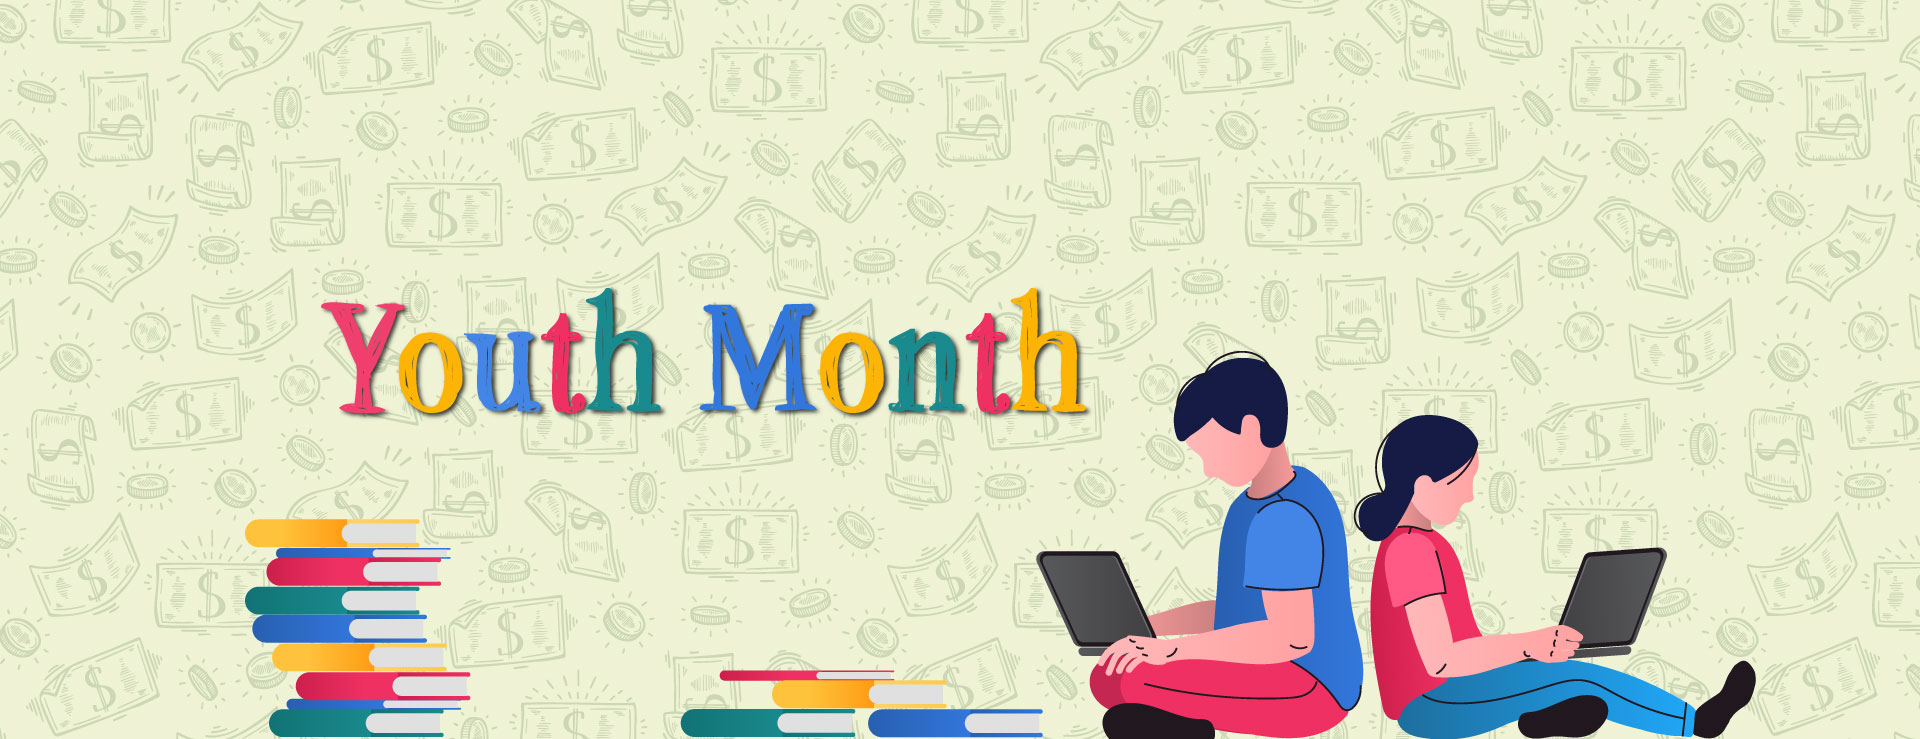 youth-month-web-min